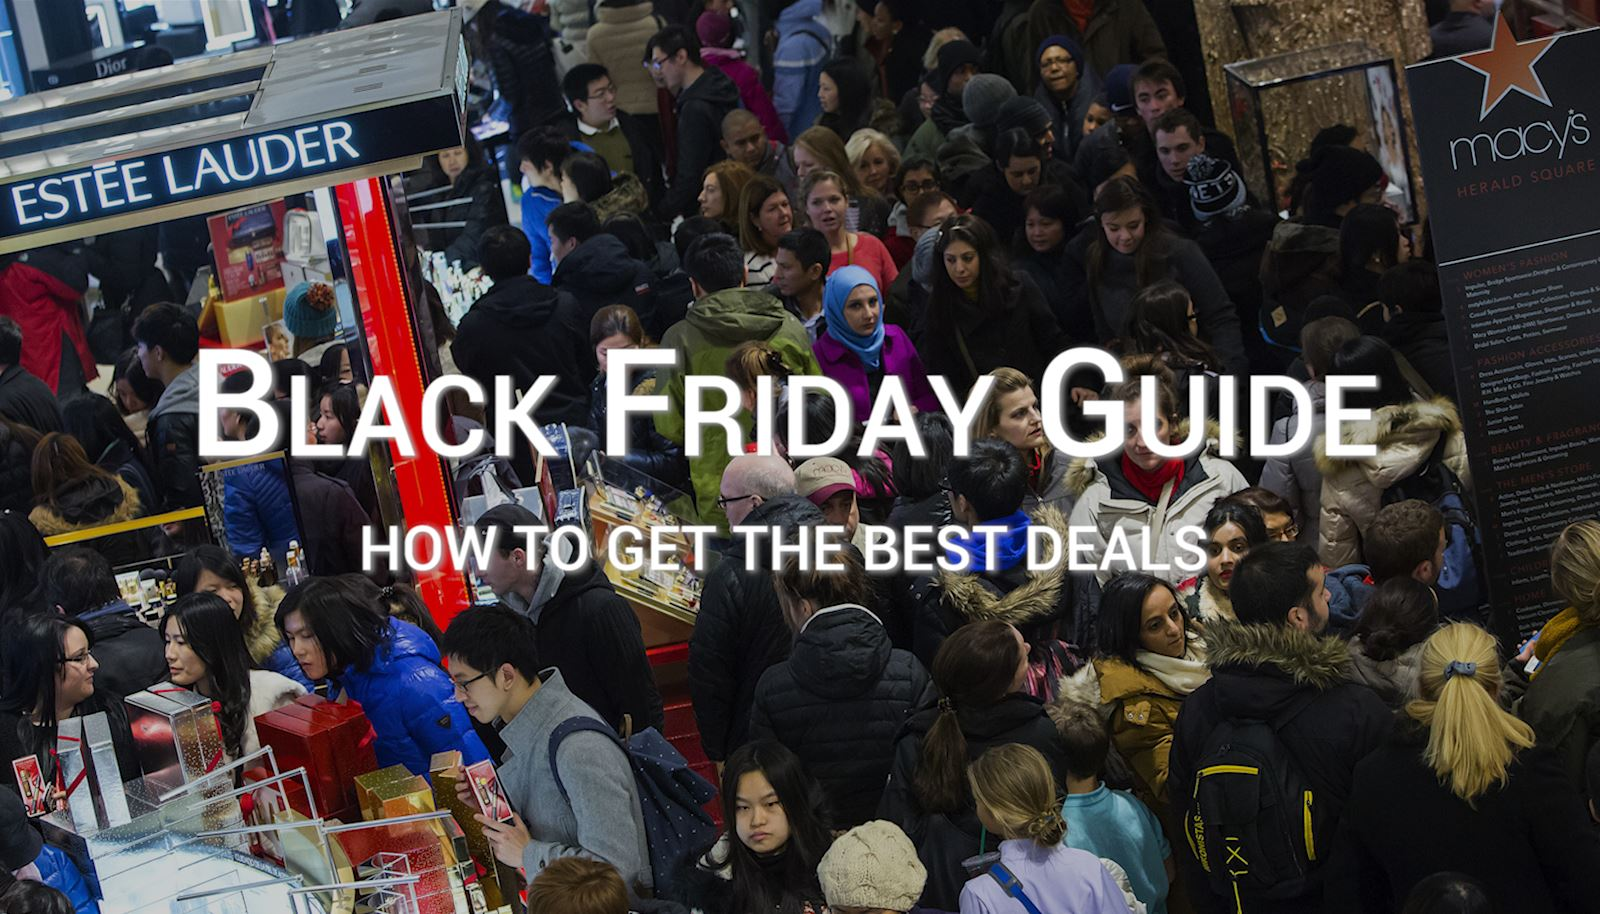 Black Friday Deals Live Blog The Best Uk Specials On Smartphones Huawei Mifi Pahe Event Soreang Tablets Apple And More